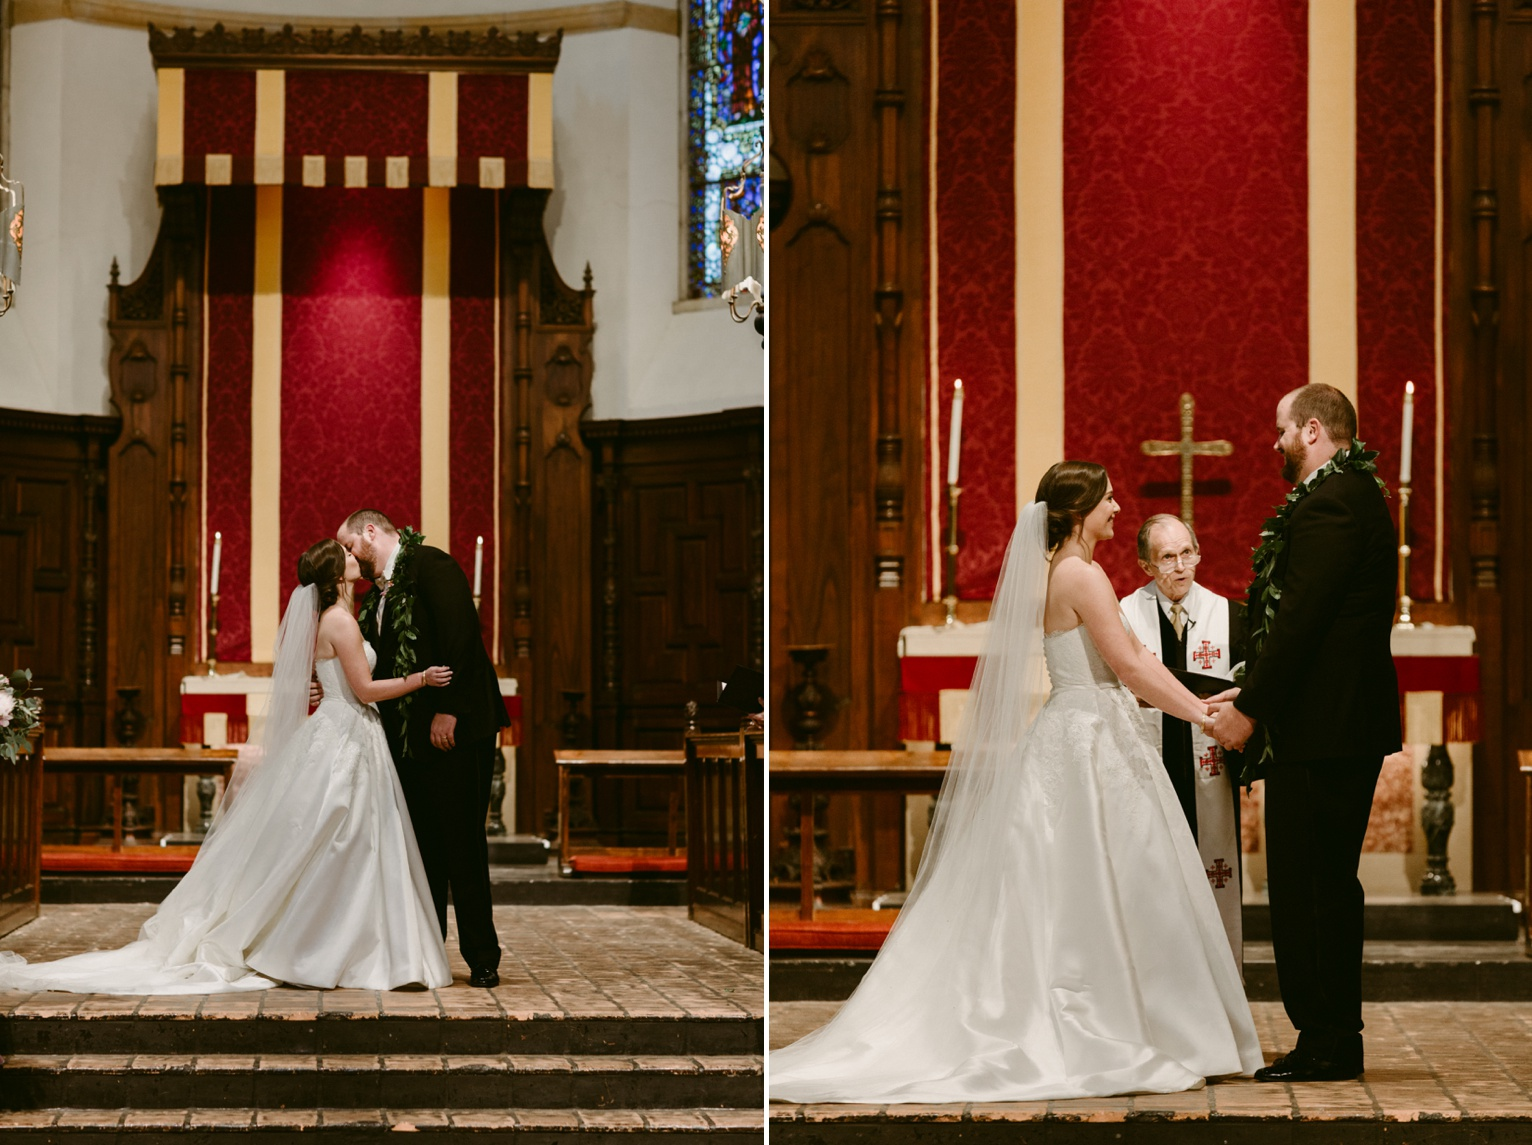 Dreamtownco.com_blog_David&Kiana_Wedding_0075.jpg